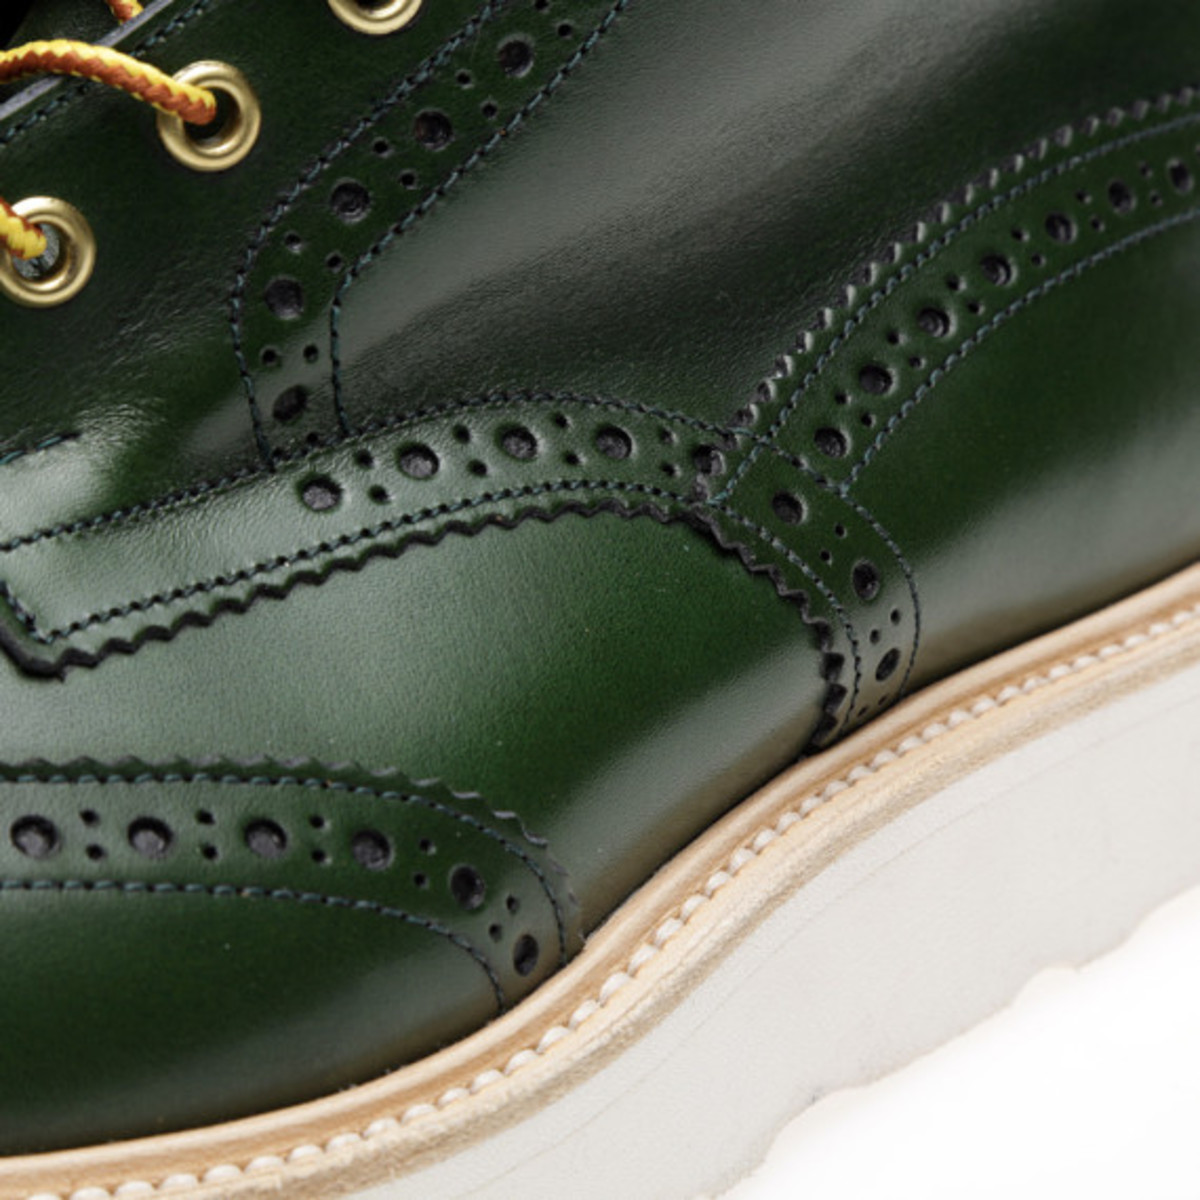 end-trickers-vibram-sole-stow-boot-05